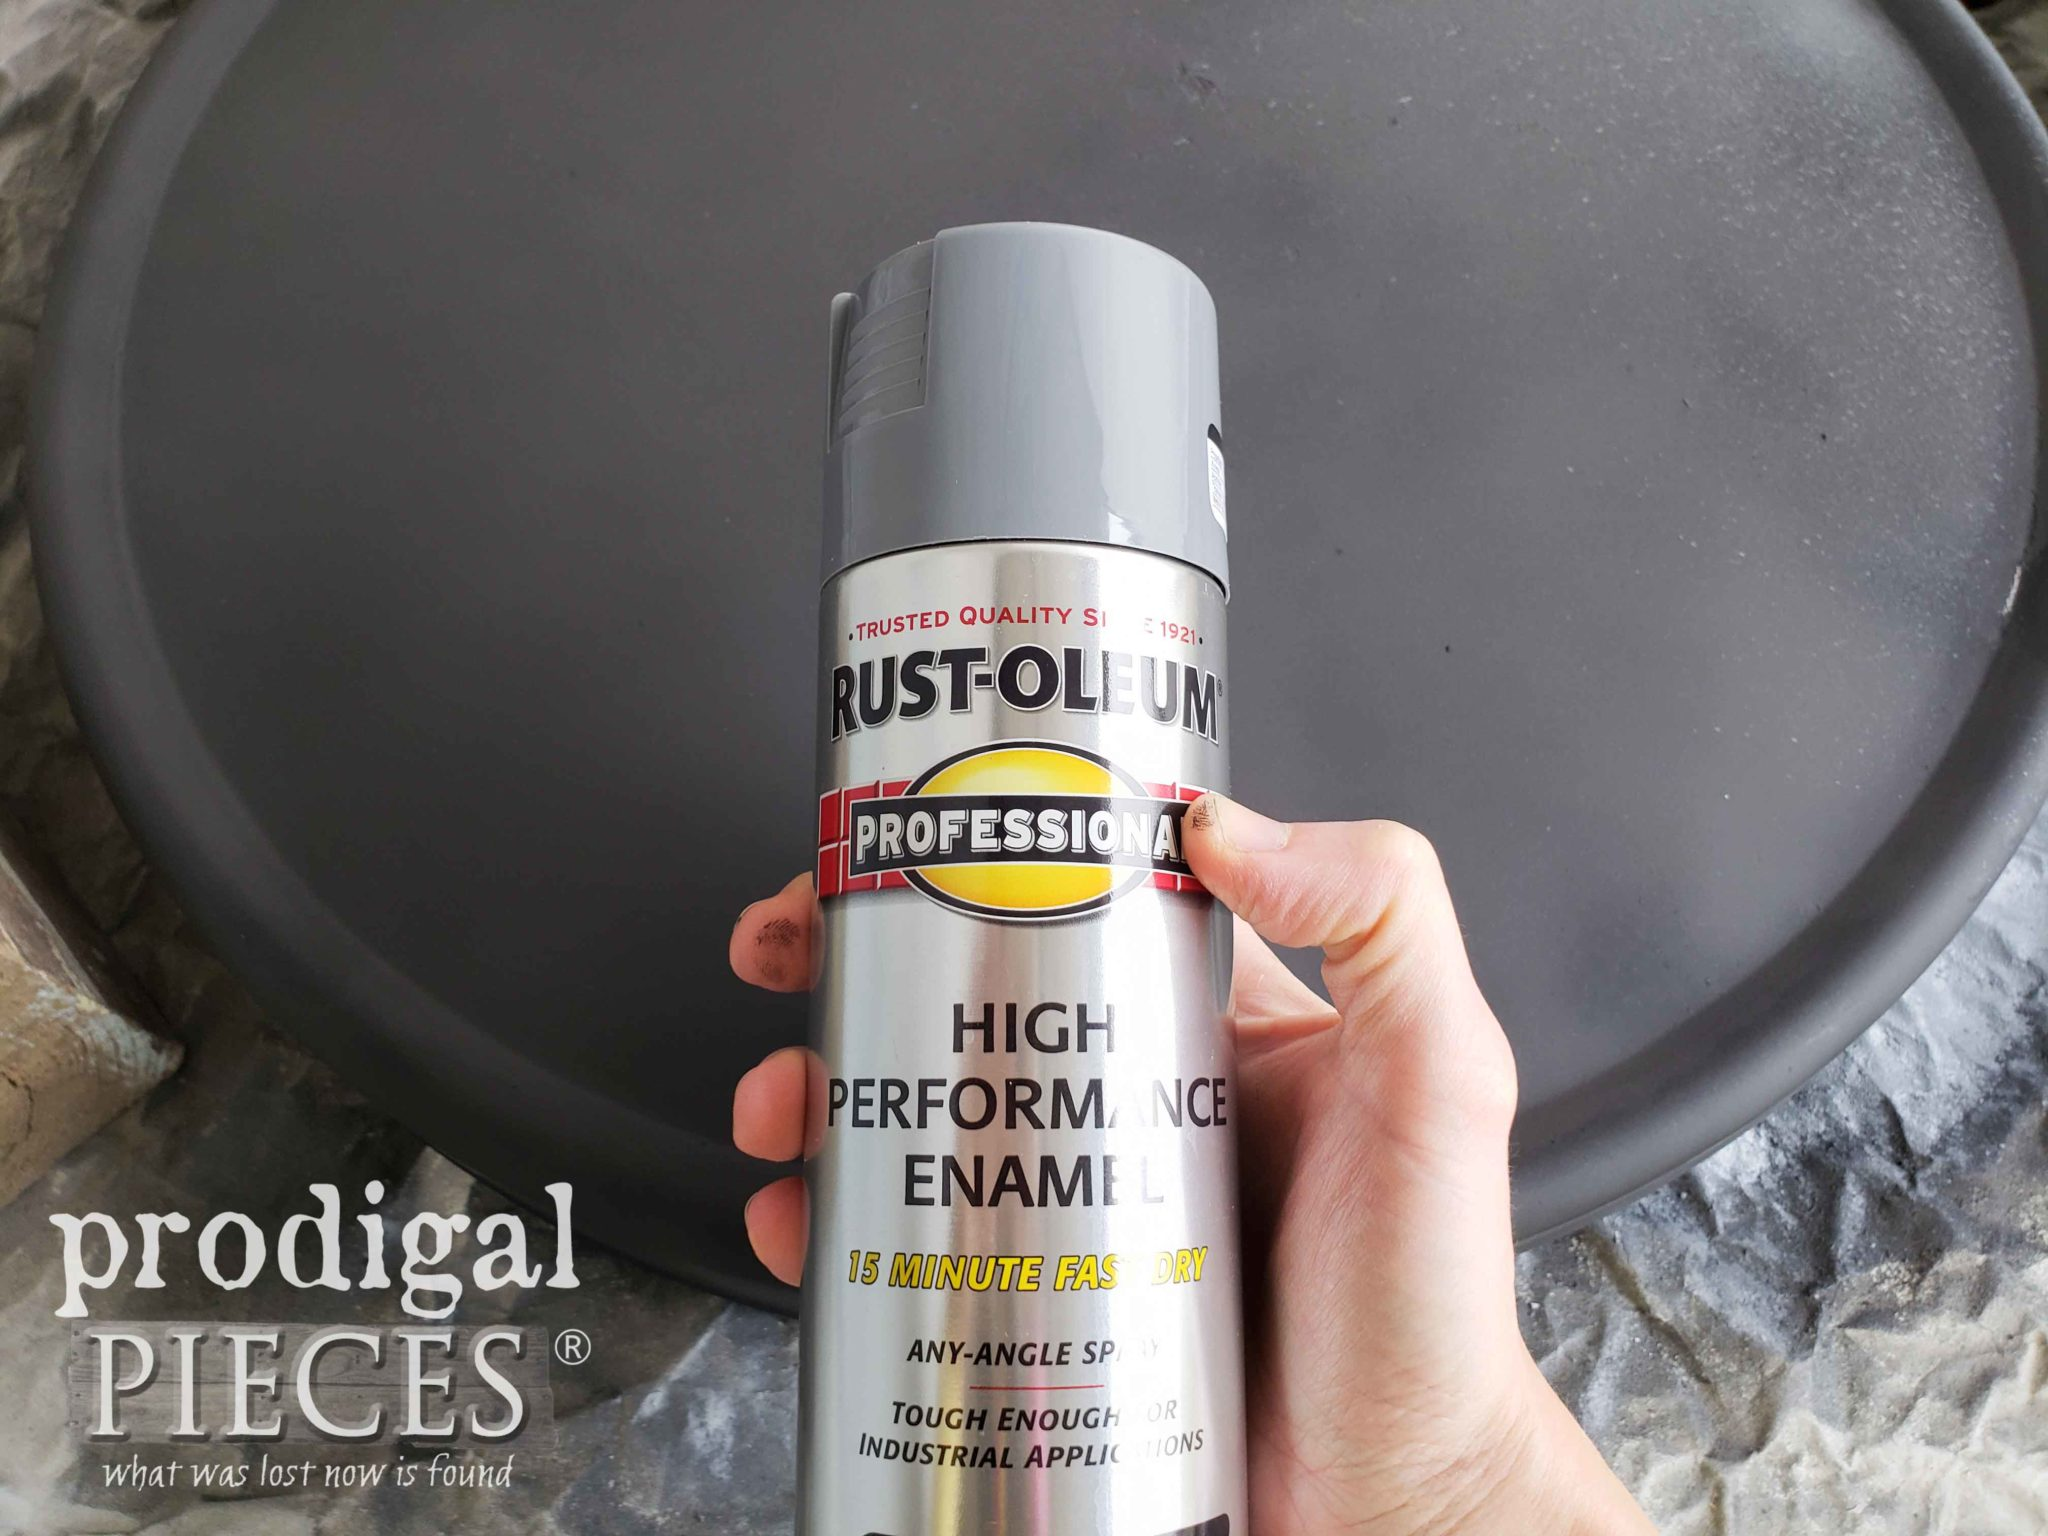 Rustoleum High Performance Spray Enamel for Farmhouse Tray | prodigalpieces.com